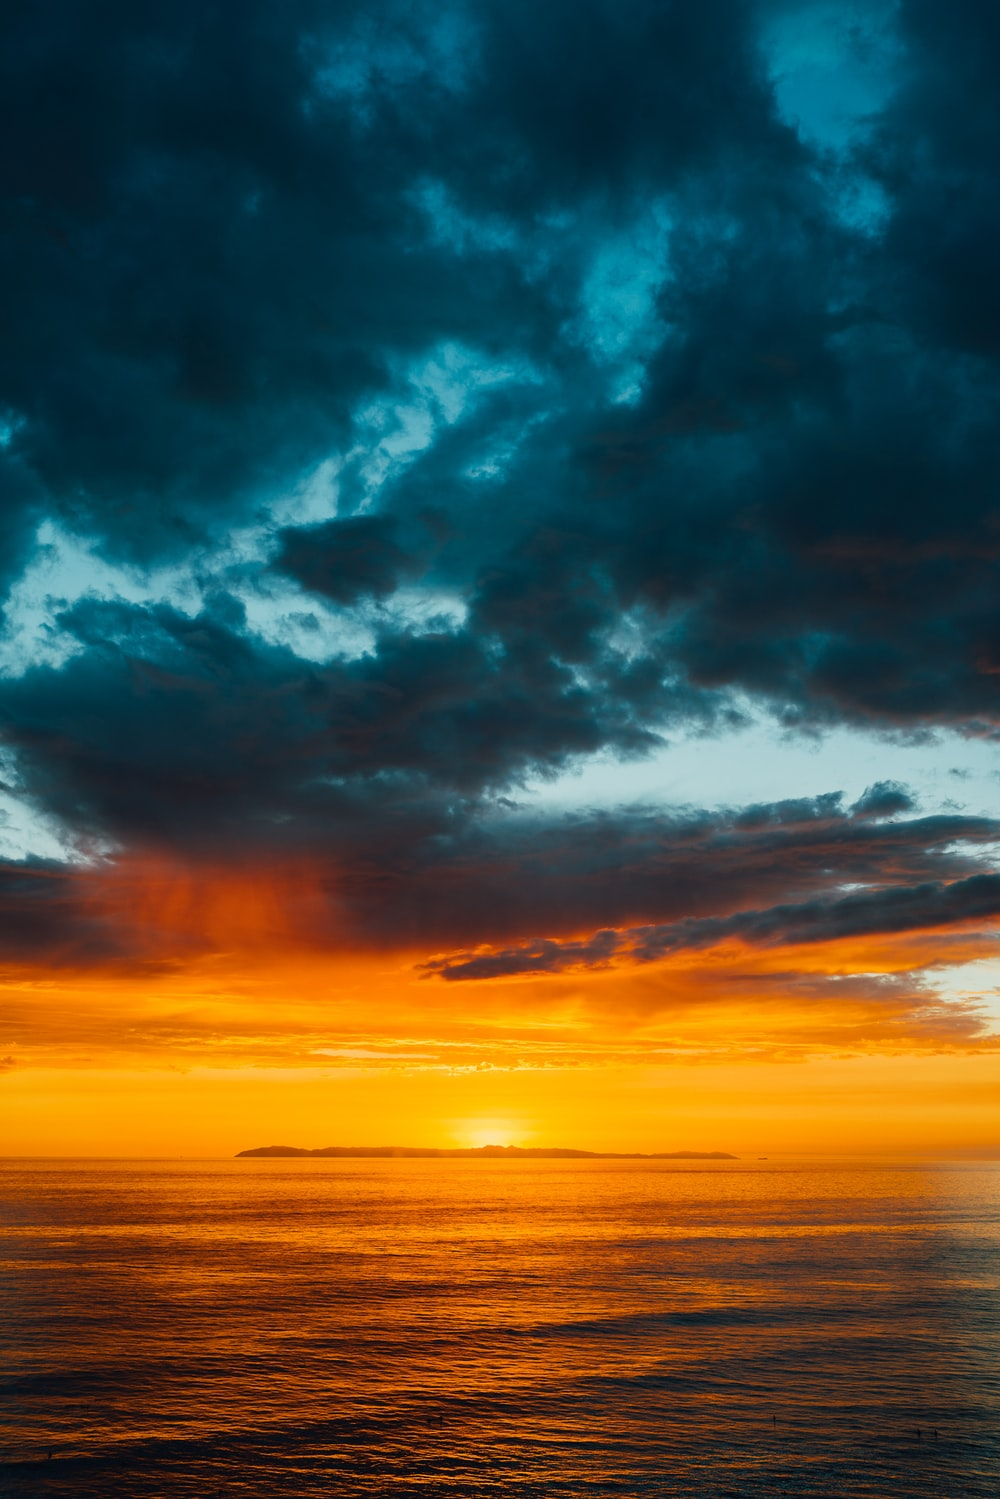 green and black clouds partly covering orange sky over sea at sunset